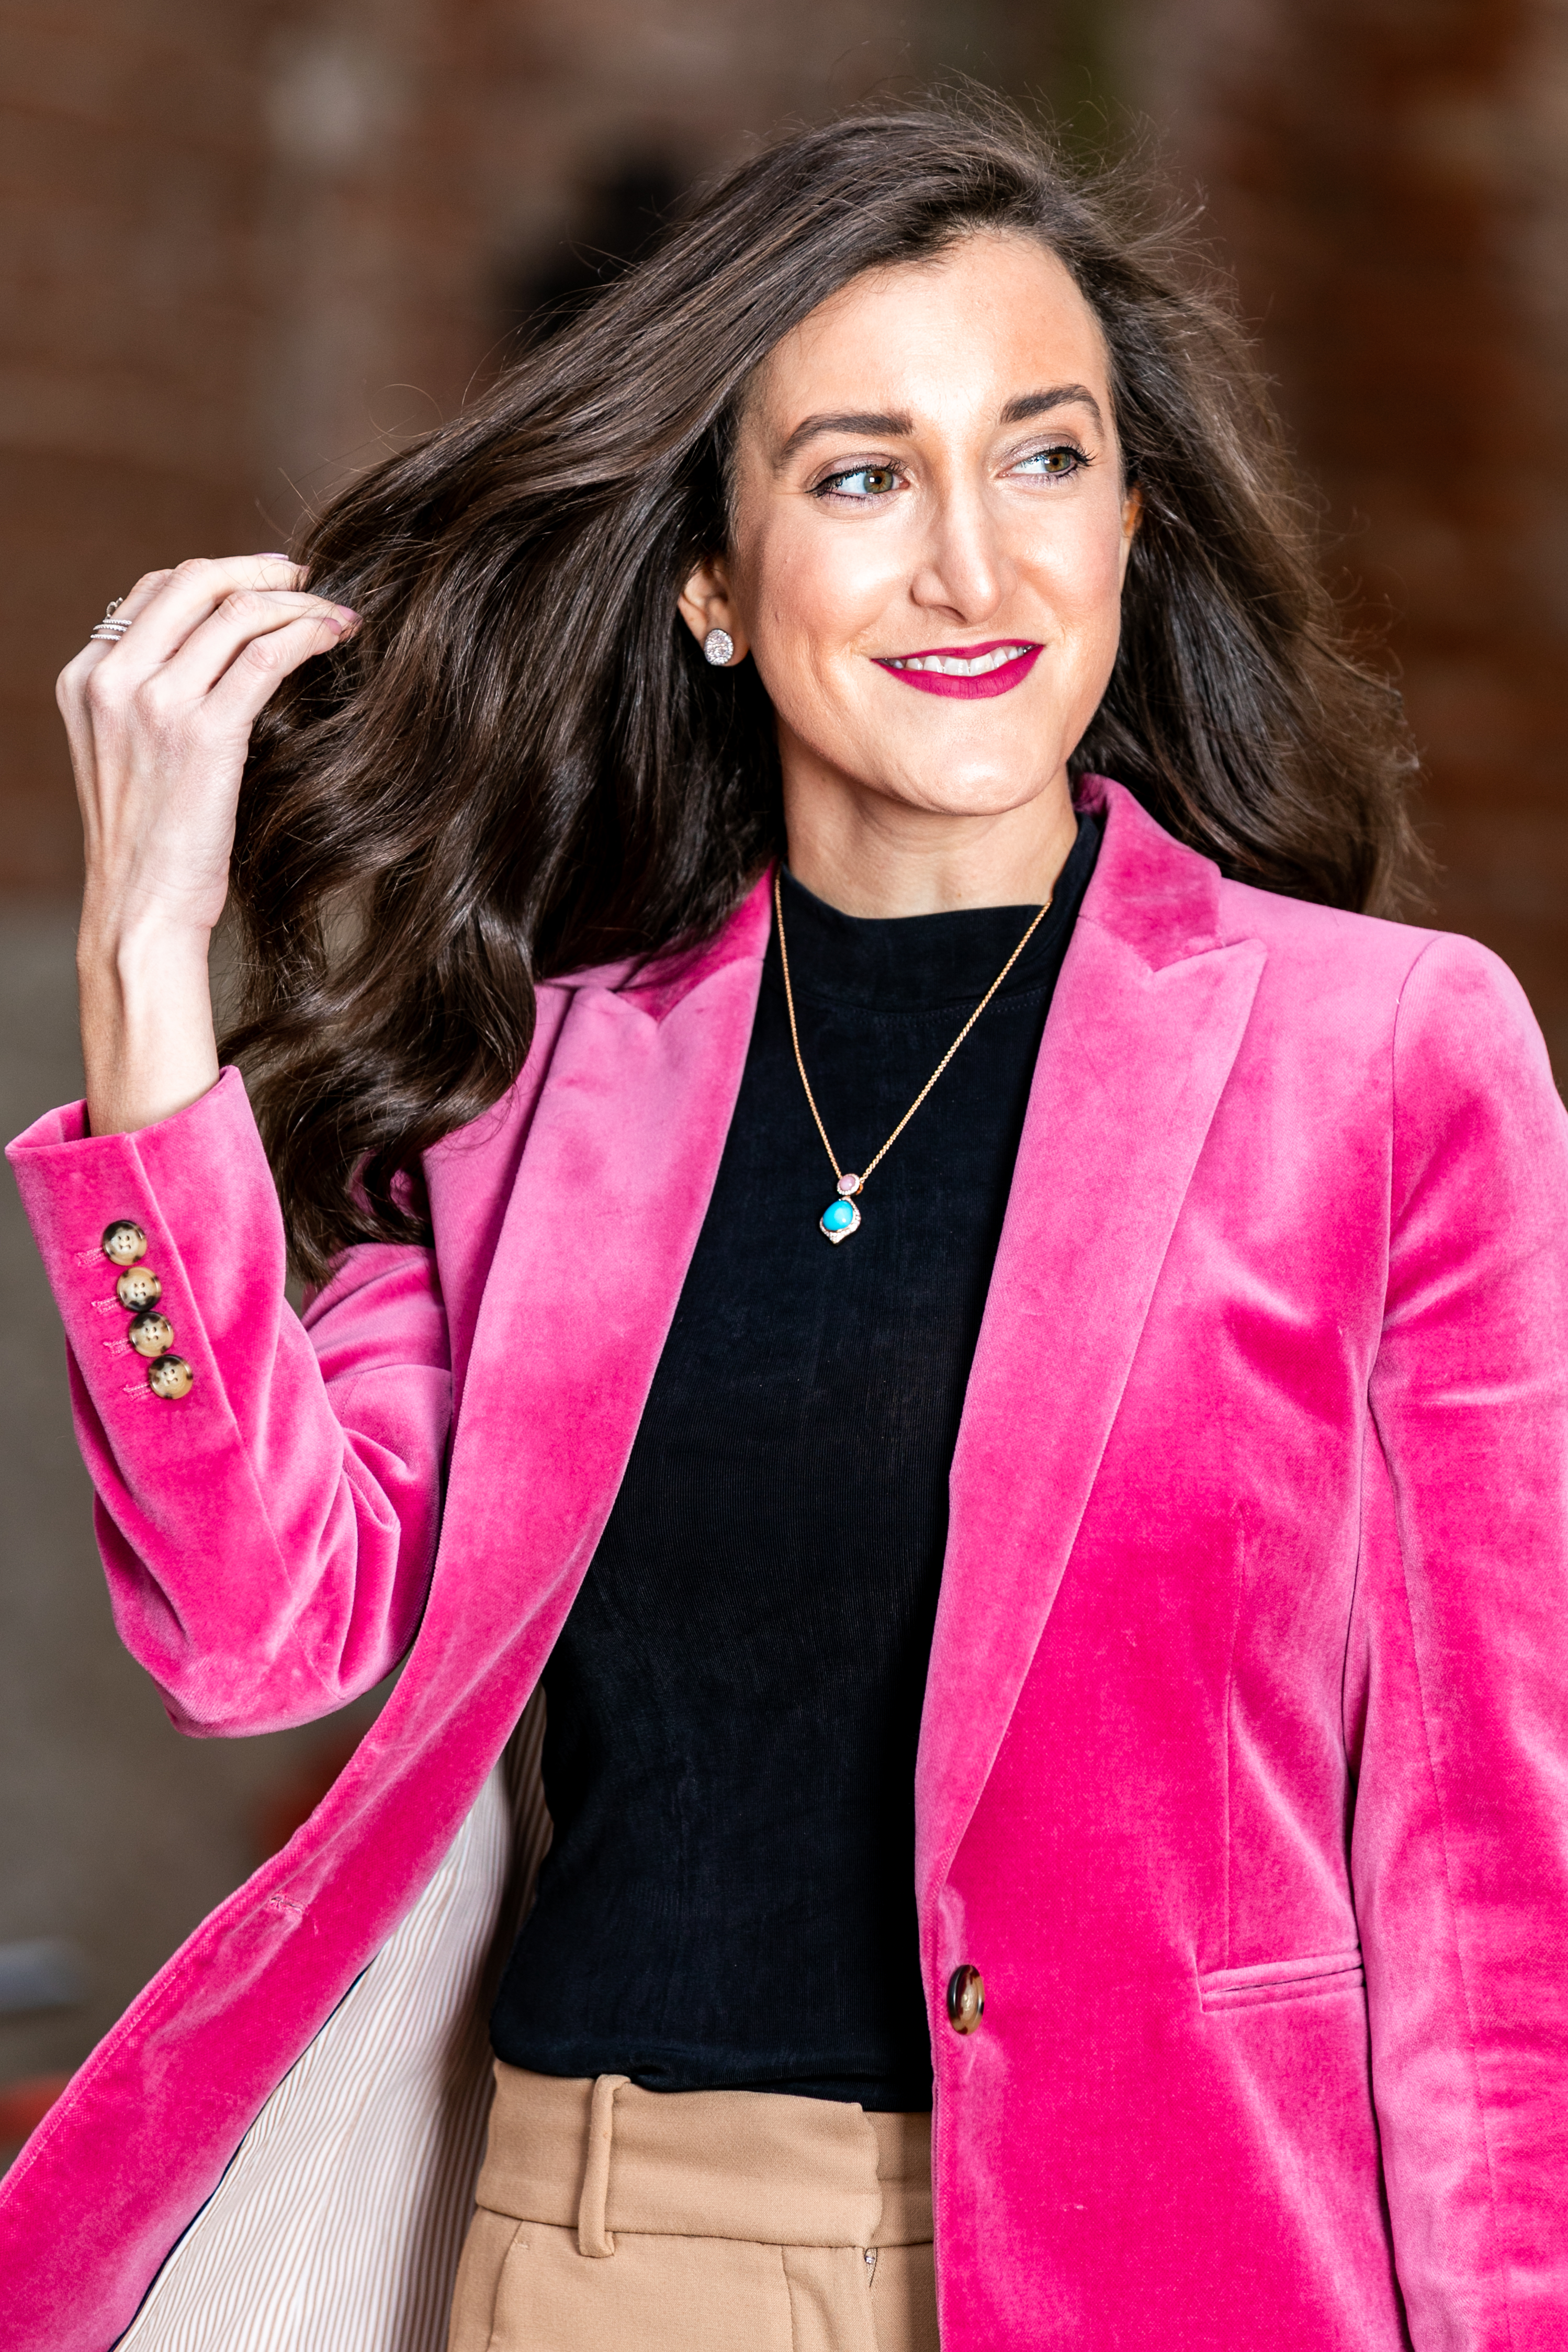 Pink Velvet JCrew Blazer Cincinnati Fashion Blogger Olivia Johnson of Baubles to Bubbles